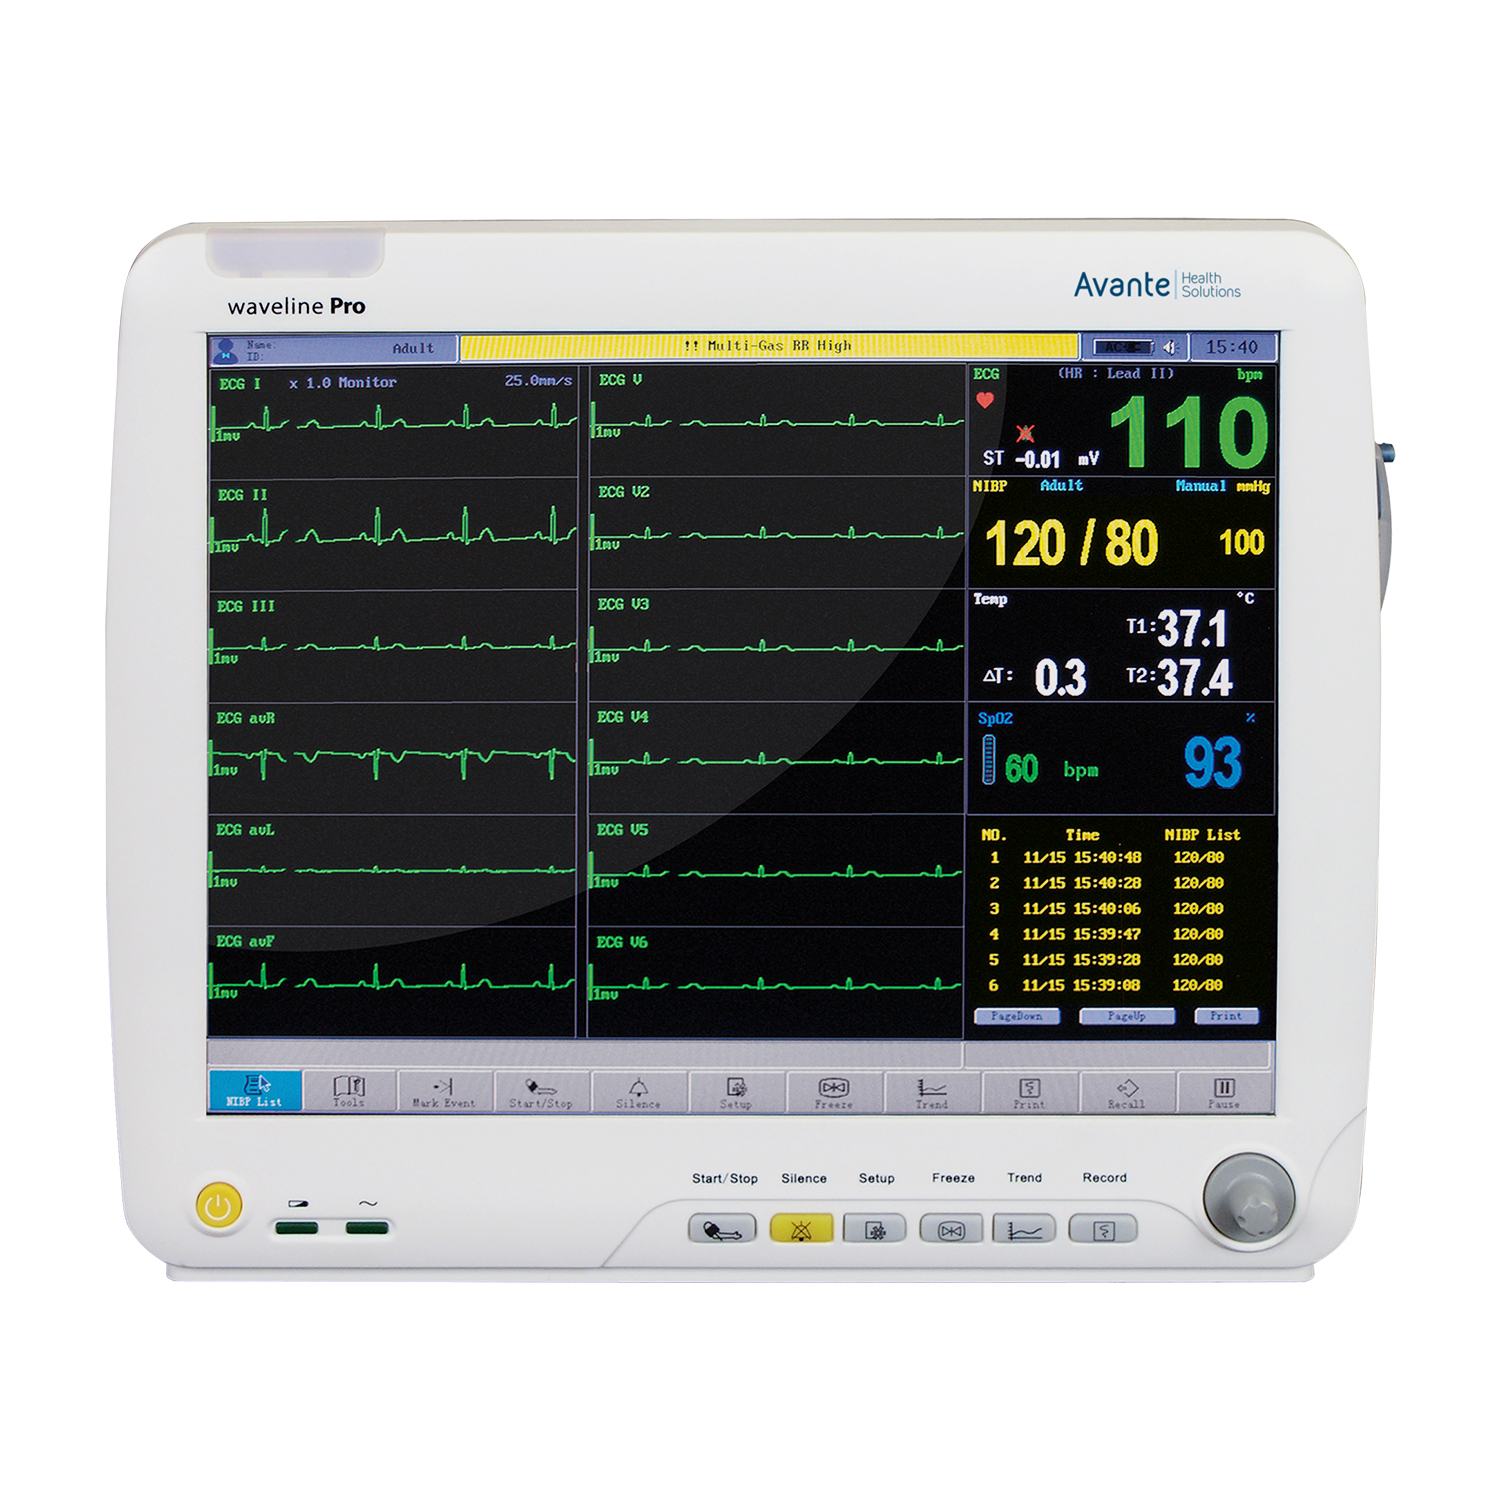 Avante Waveline Pro Touch-Screen Anesthesia Monitor